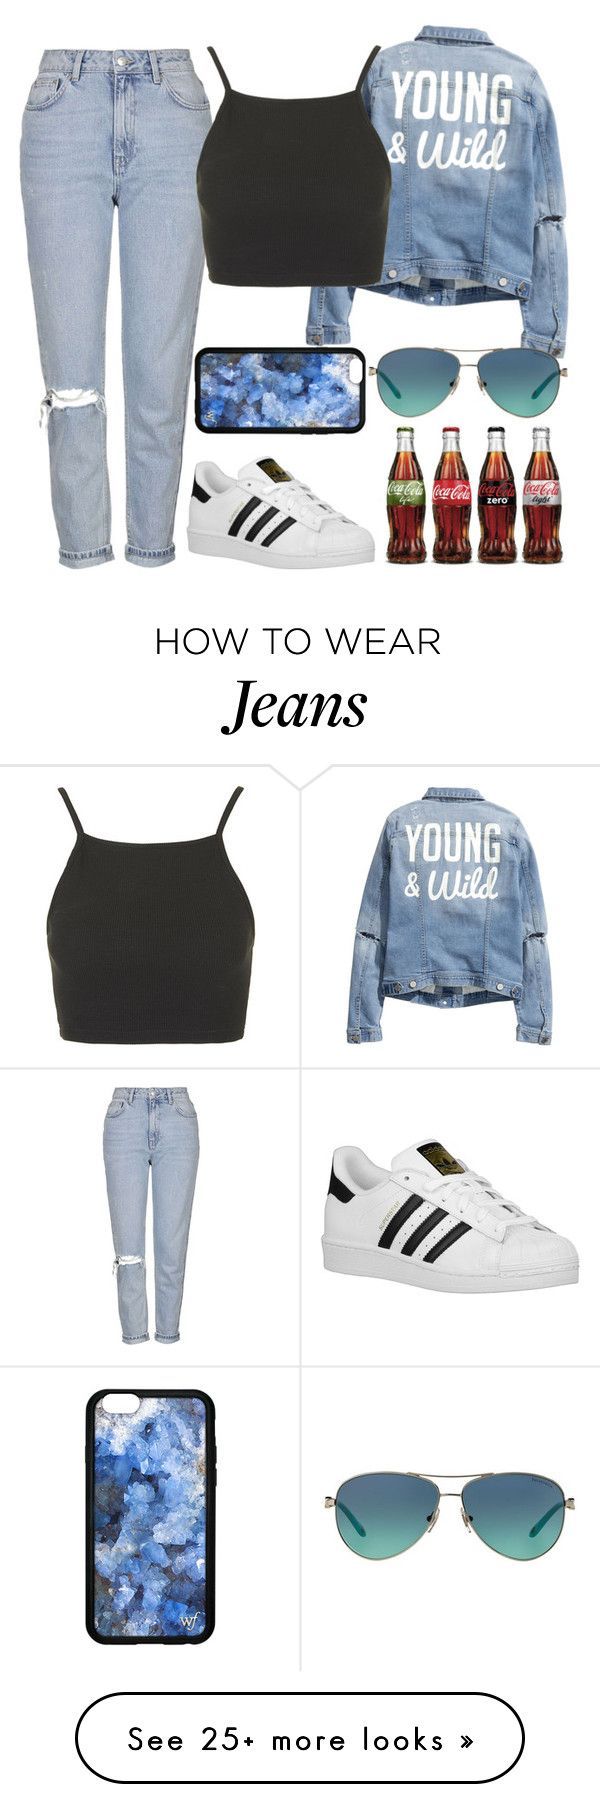 """""""Untitled#1360"""" by mihai-theodora on Polyvore featuring H&M, Topshop, adidas Originals, Tiffany & Co., women's clothing, women, female, woman, misses and juniors"""